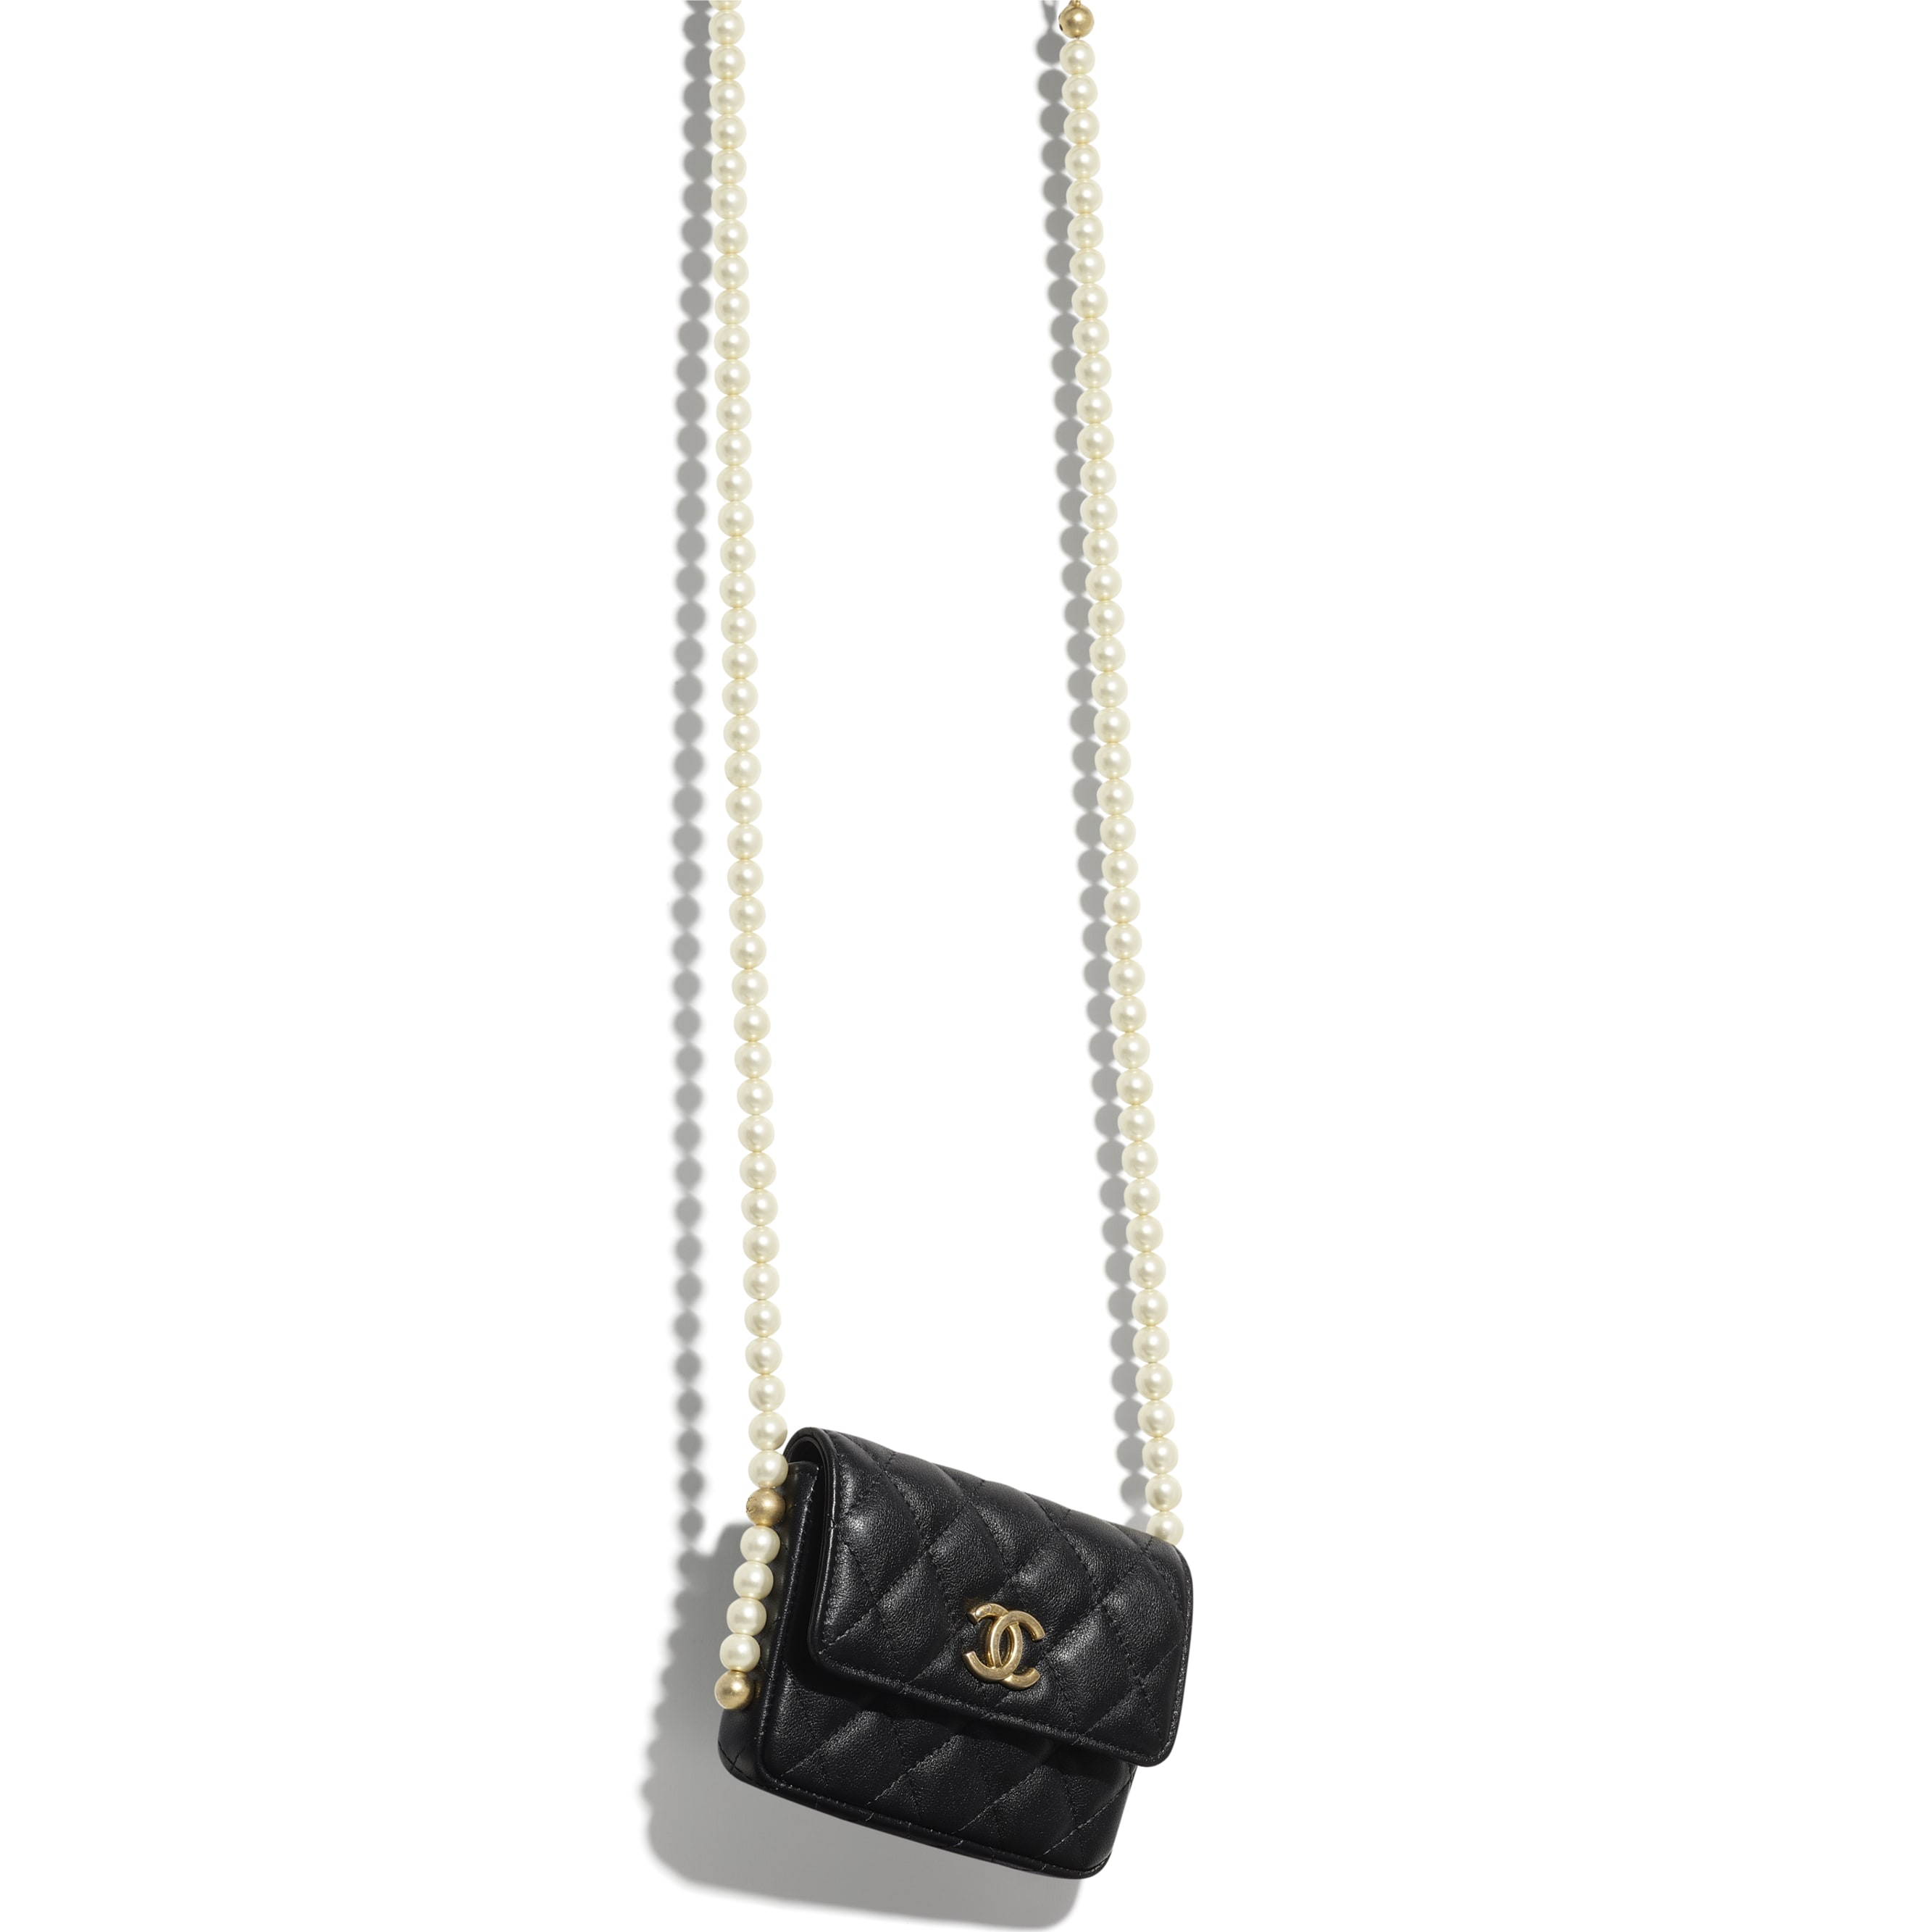 Flap Card Holder with Chain - Black - Calfskin, Imitation Pearls & Gold-Tone Metal - CHANEL - Other view - see standard sized version